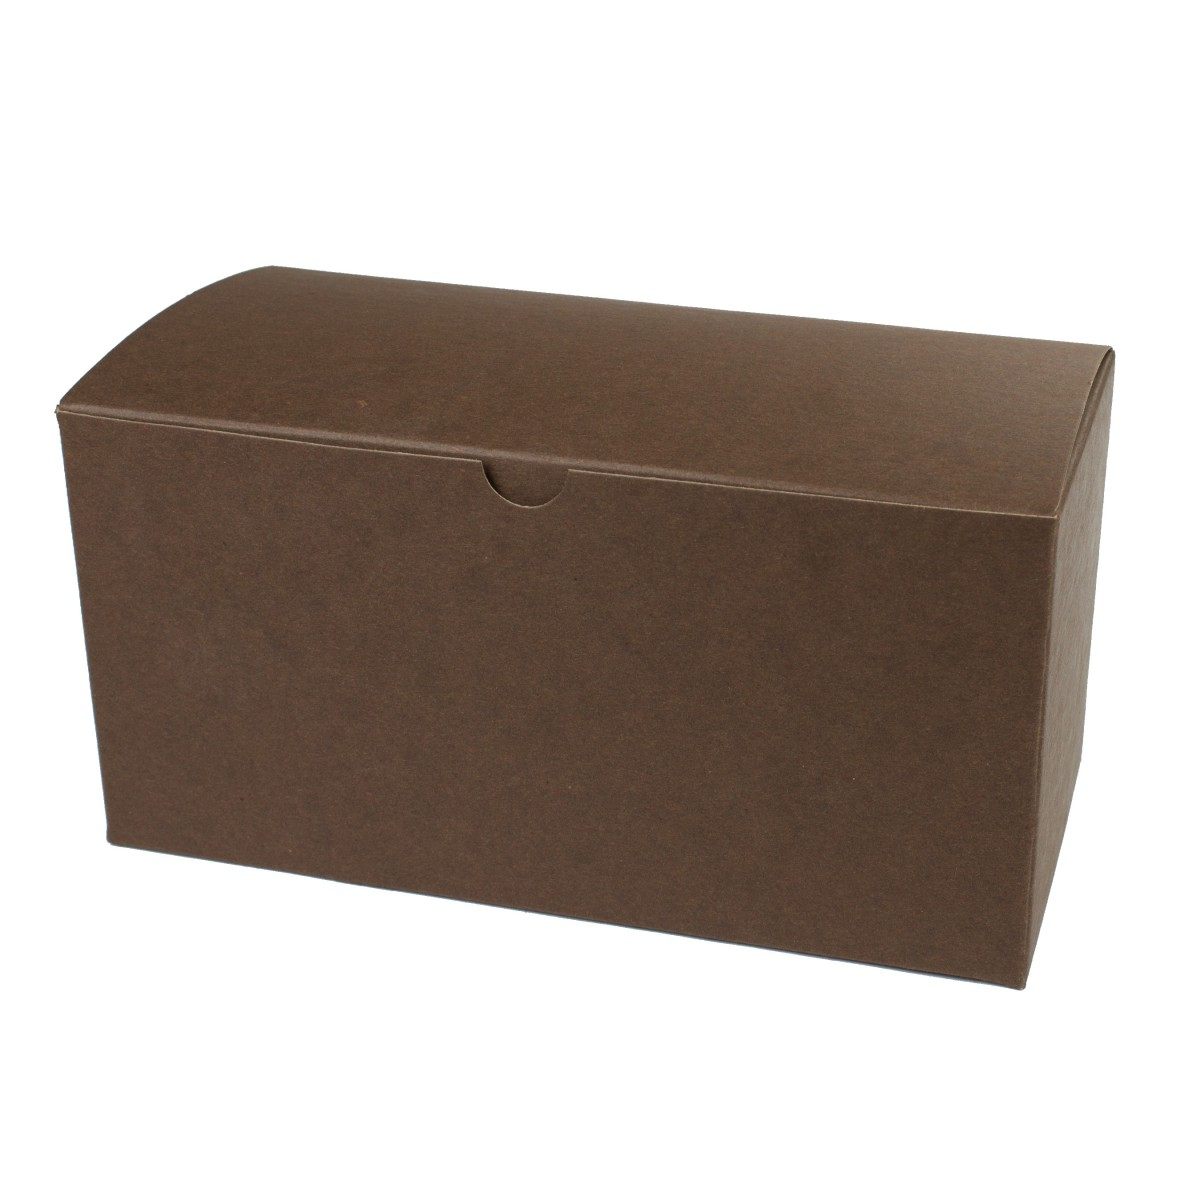 9 x 4.5 x 4.5 COCOA TINTED TUCK-TOP GIFT BOXES